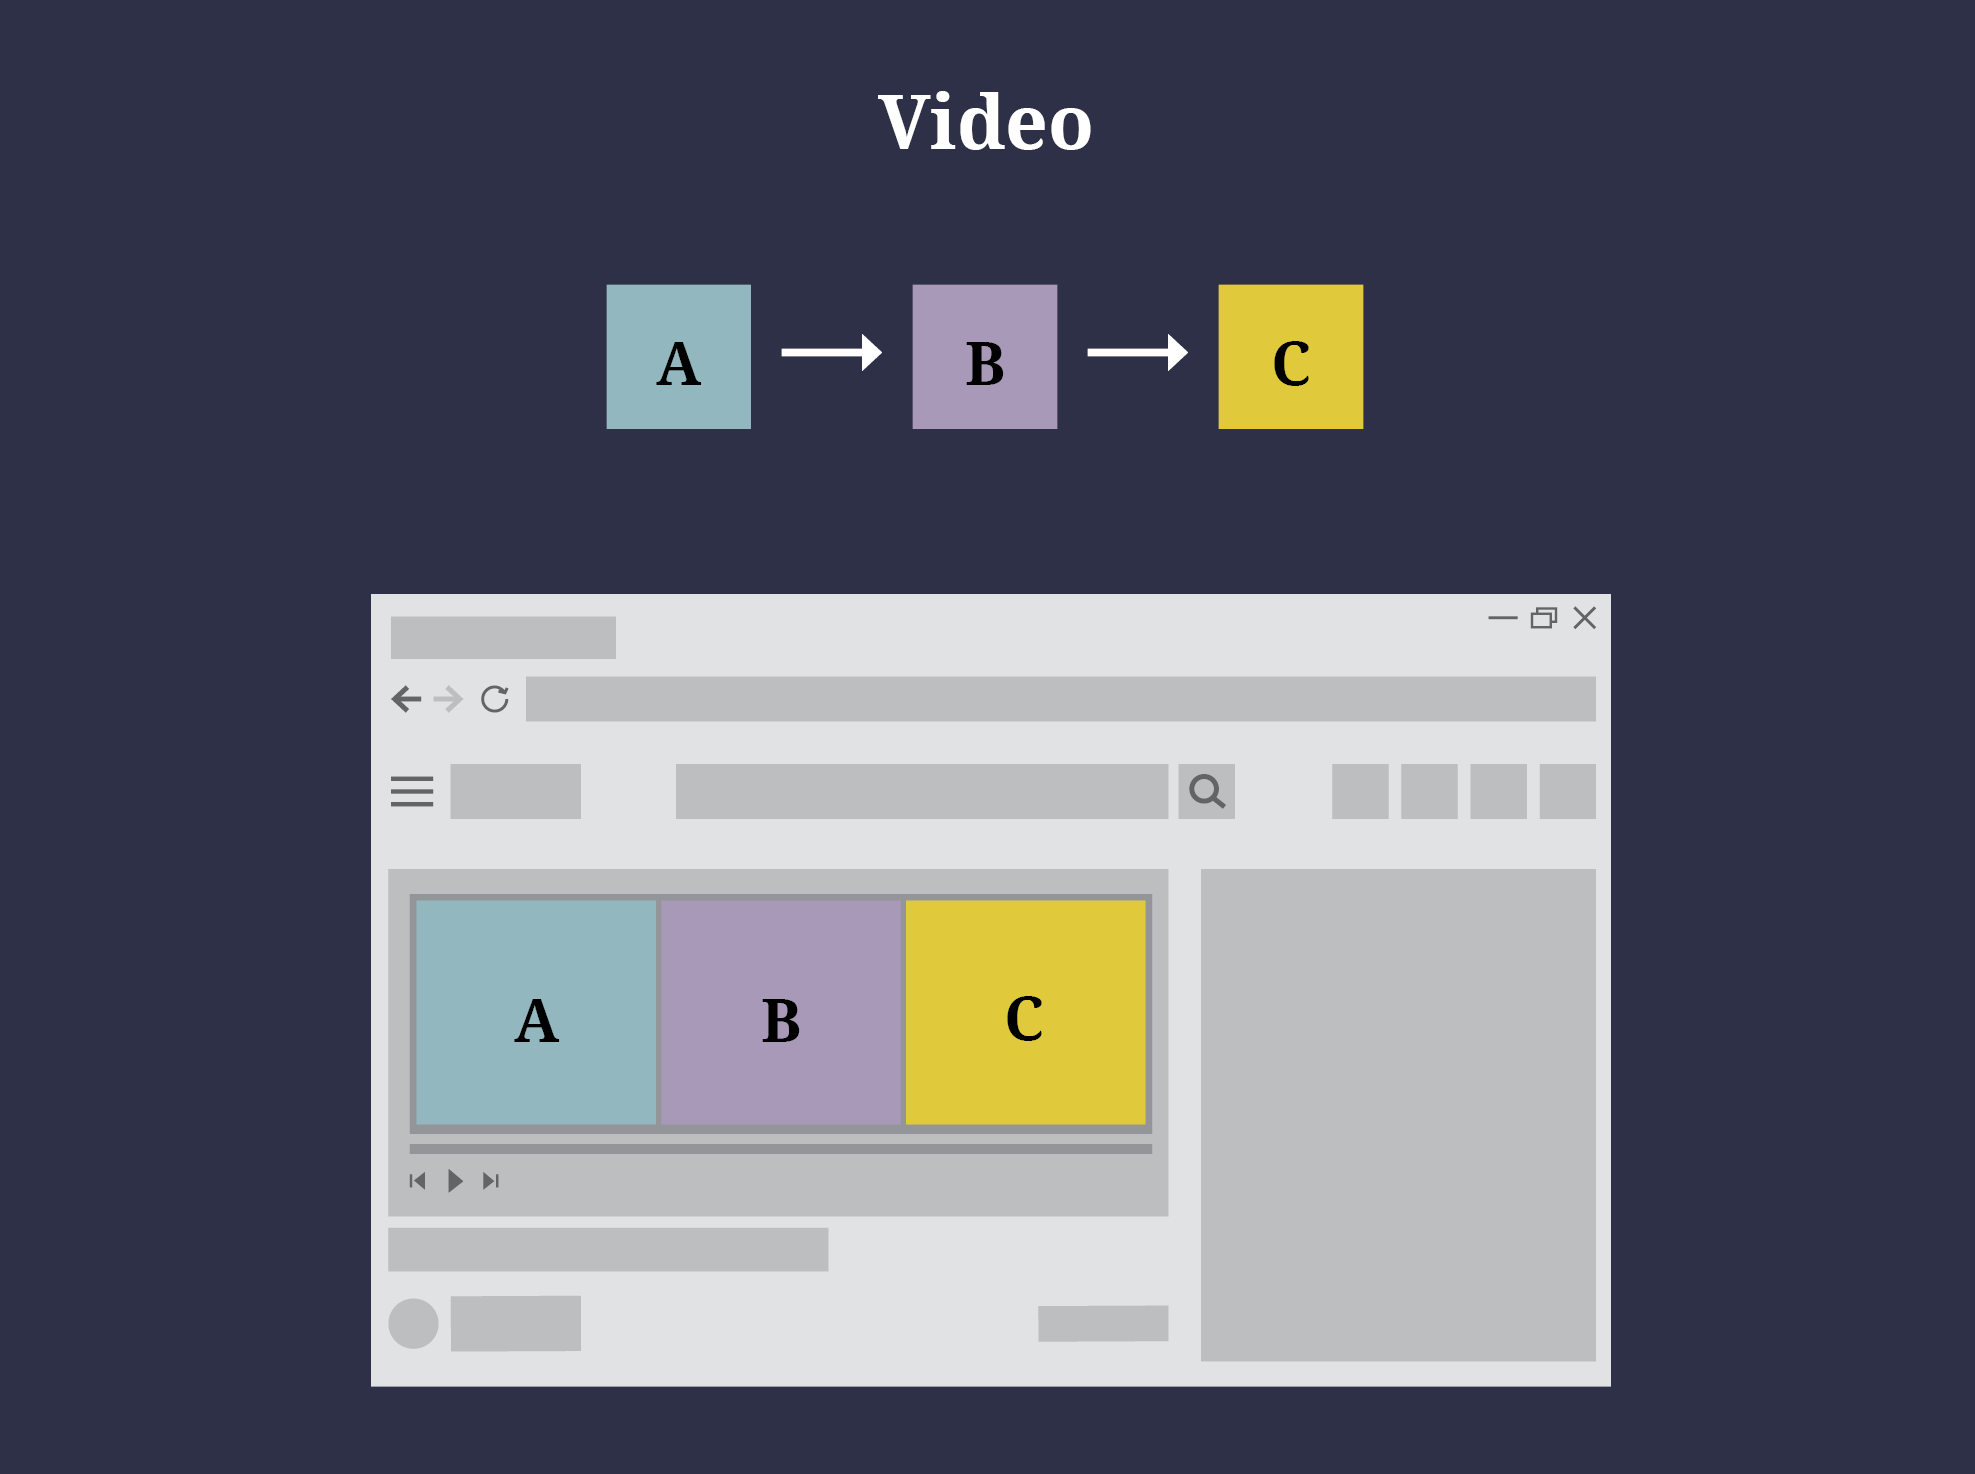 Video communicates information from A to B to C